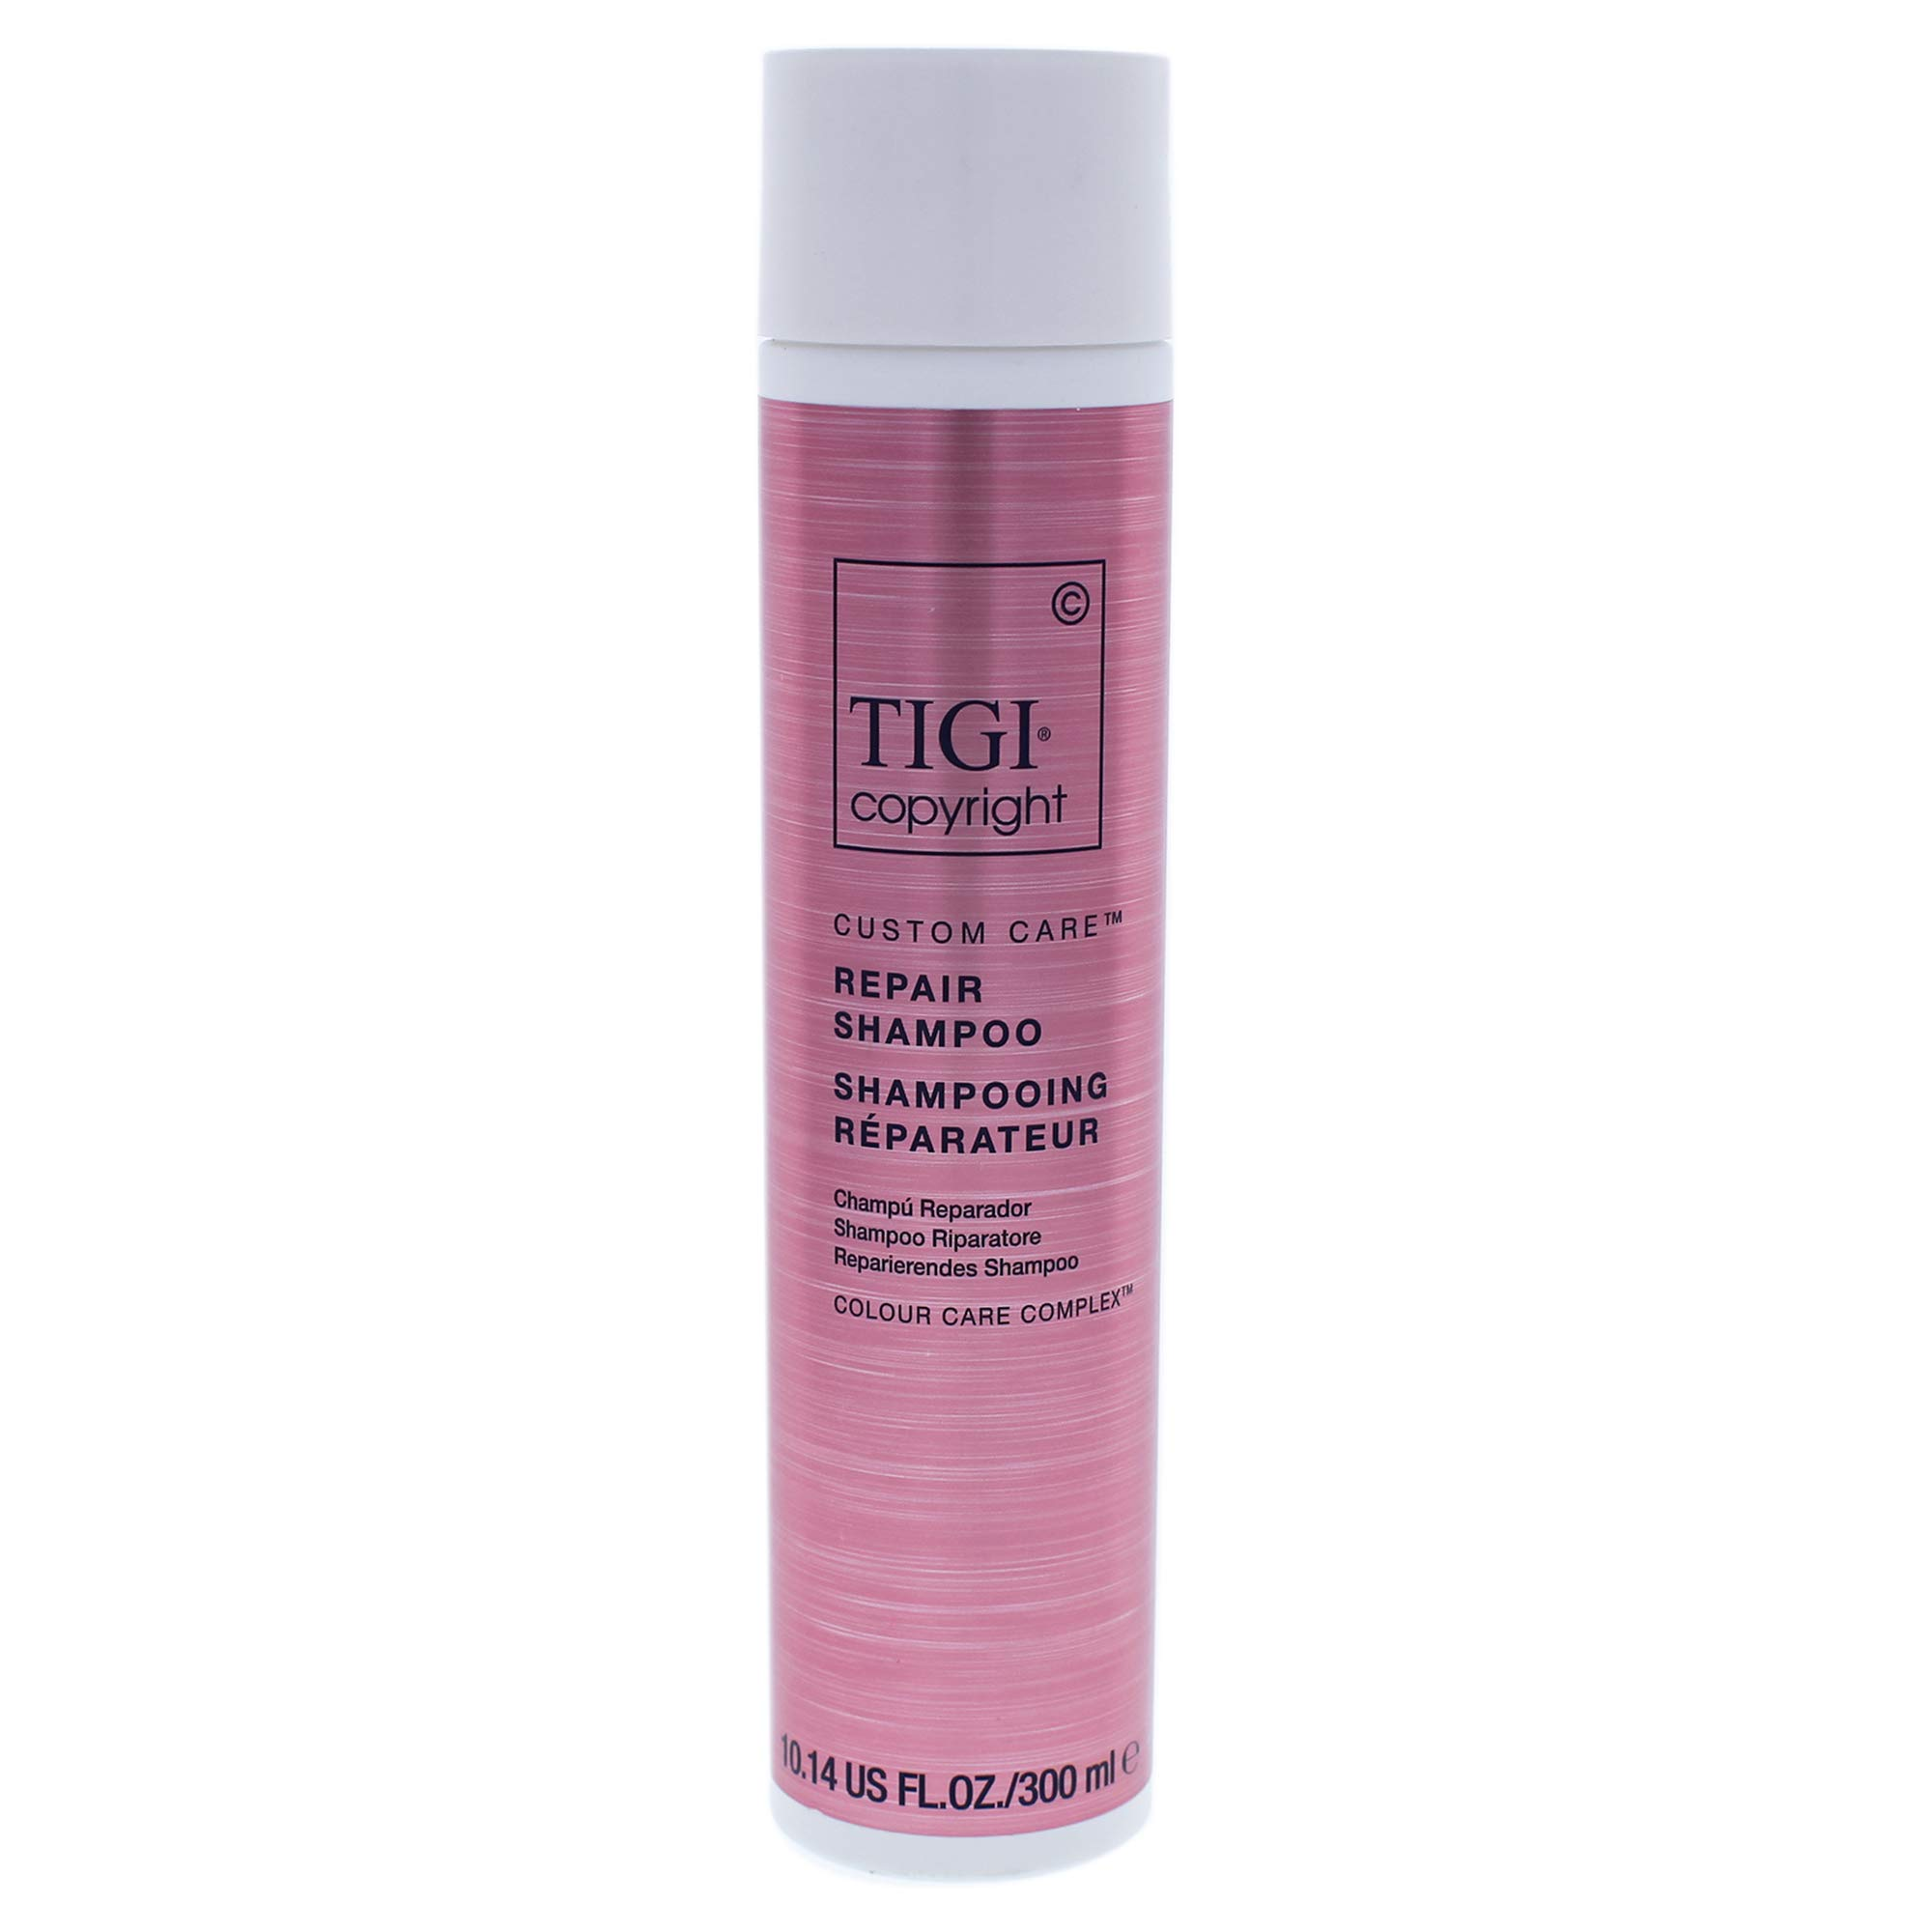 TIGI Repair Shampoo for Unisex, 10.14 Ounce